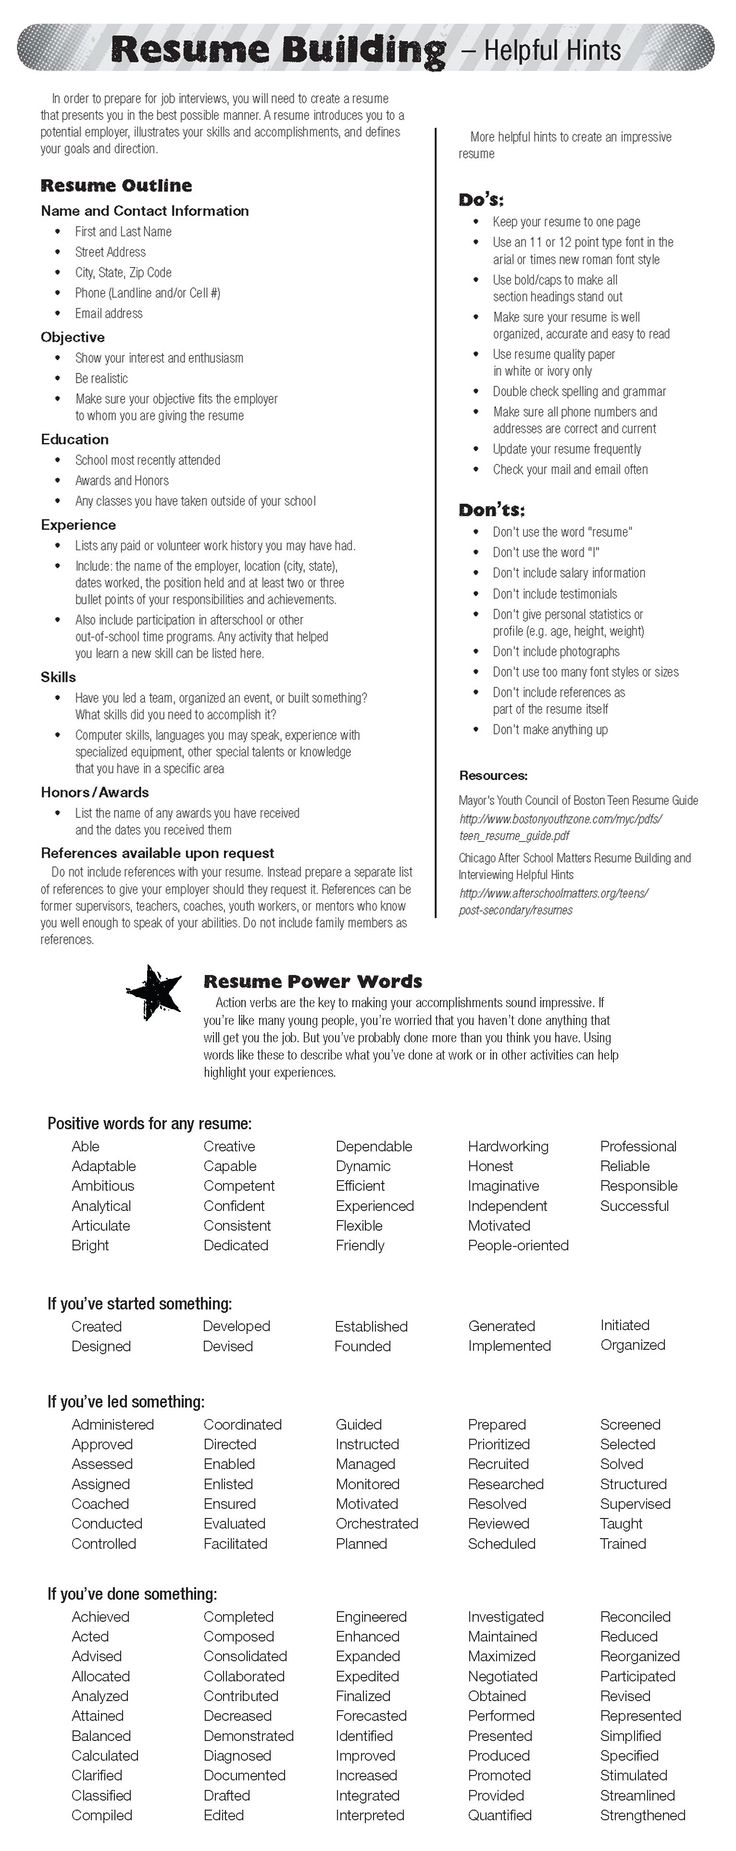 check out todays resume building tips resume resumepowerwords - Building A Resume